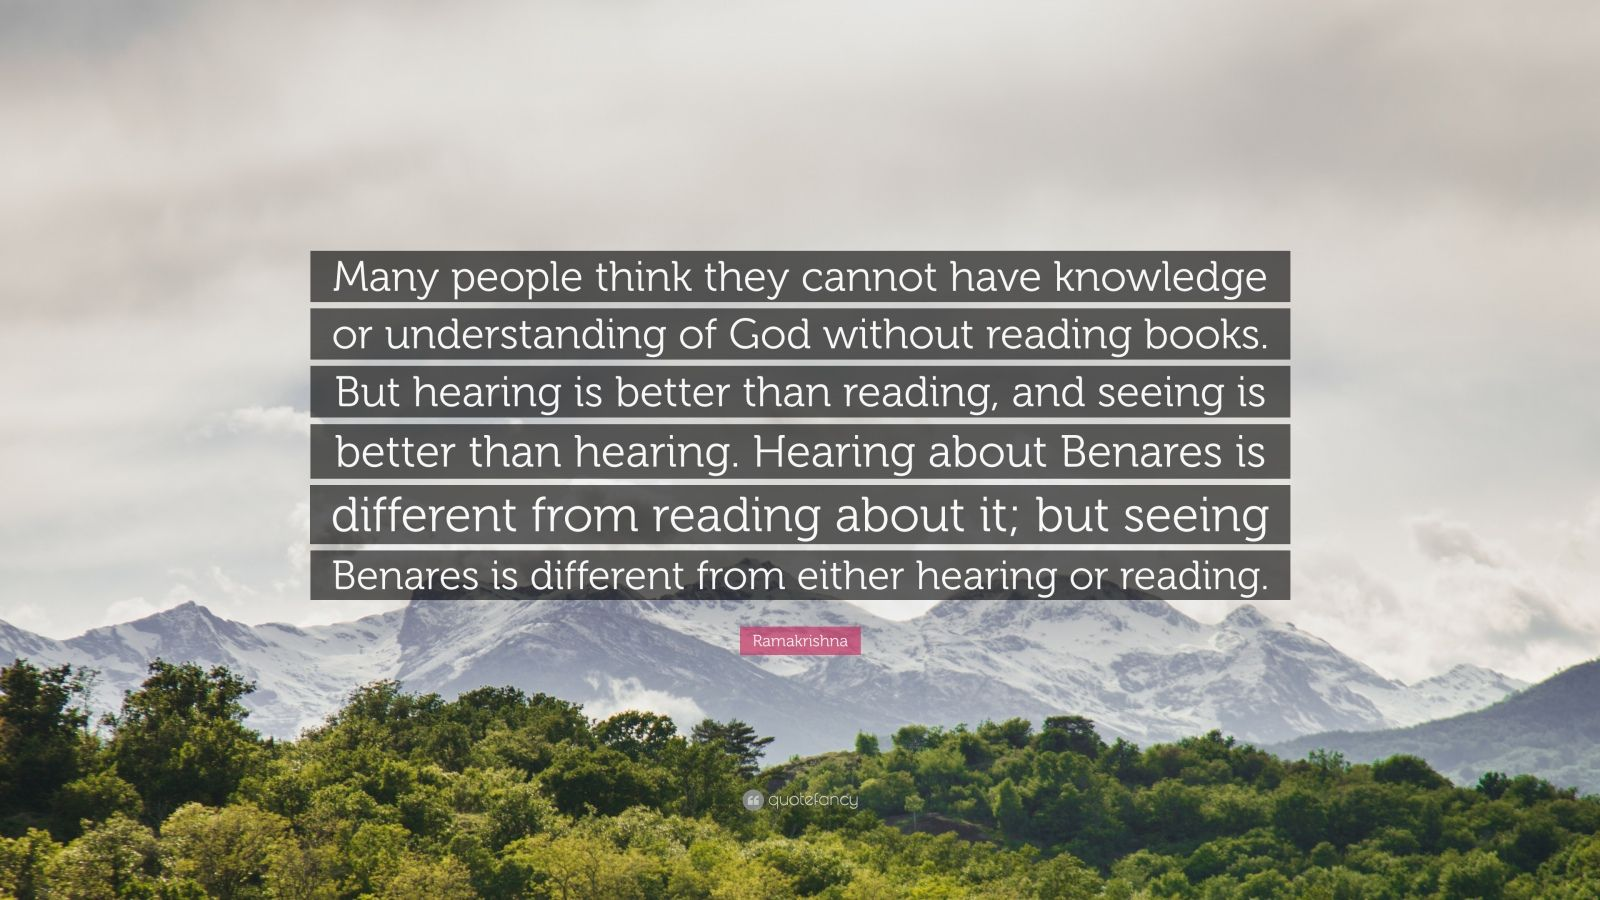 """Ramakrishna Quote: """"Many people think they cannot have knowledge or understanding of God without reading books. But hearing is better than reading, and seeing is better than hearing. Hearing about Benares is different from reading about it; but seeing Benares is different from either hearing or reading."""""""